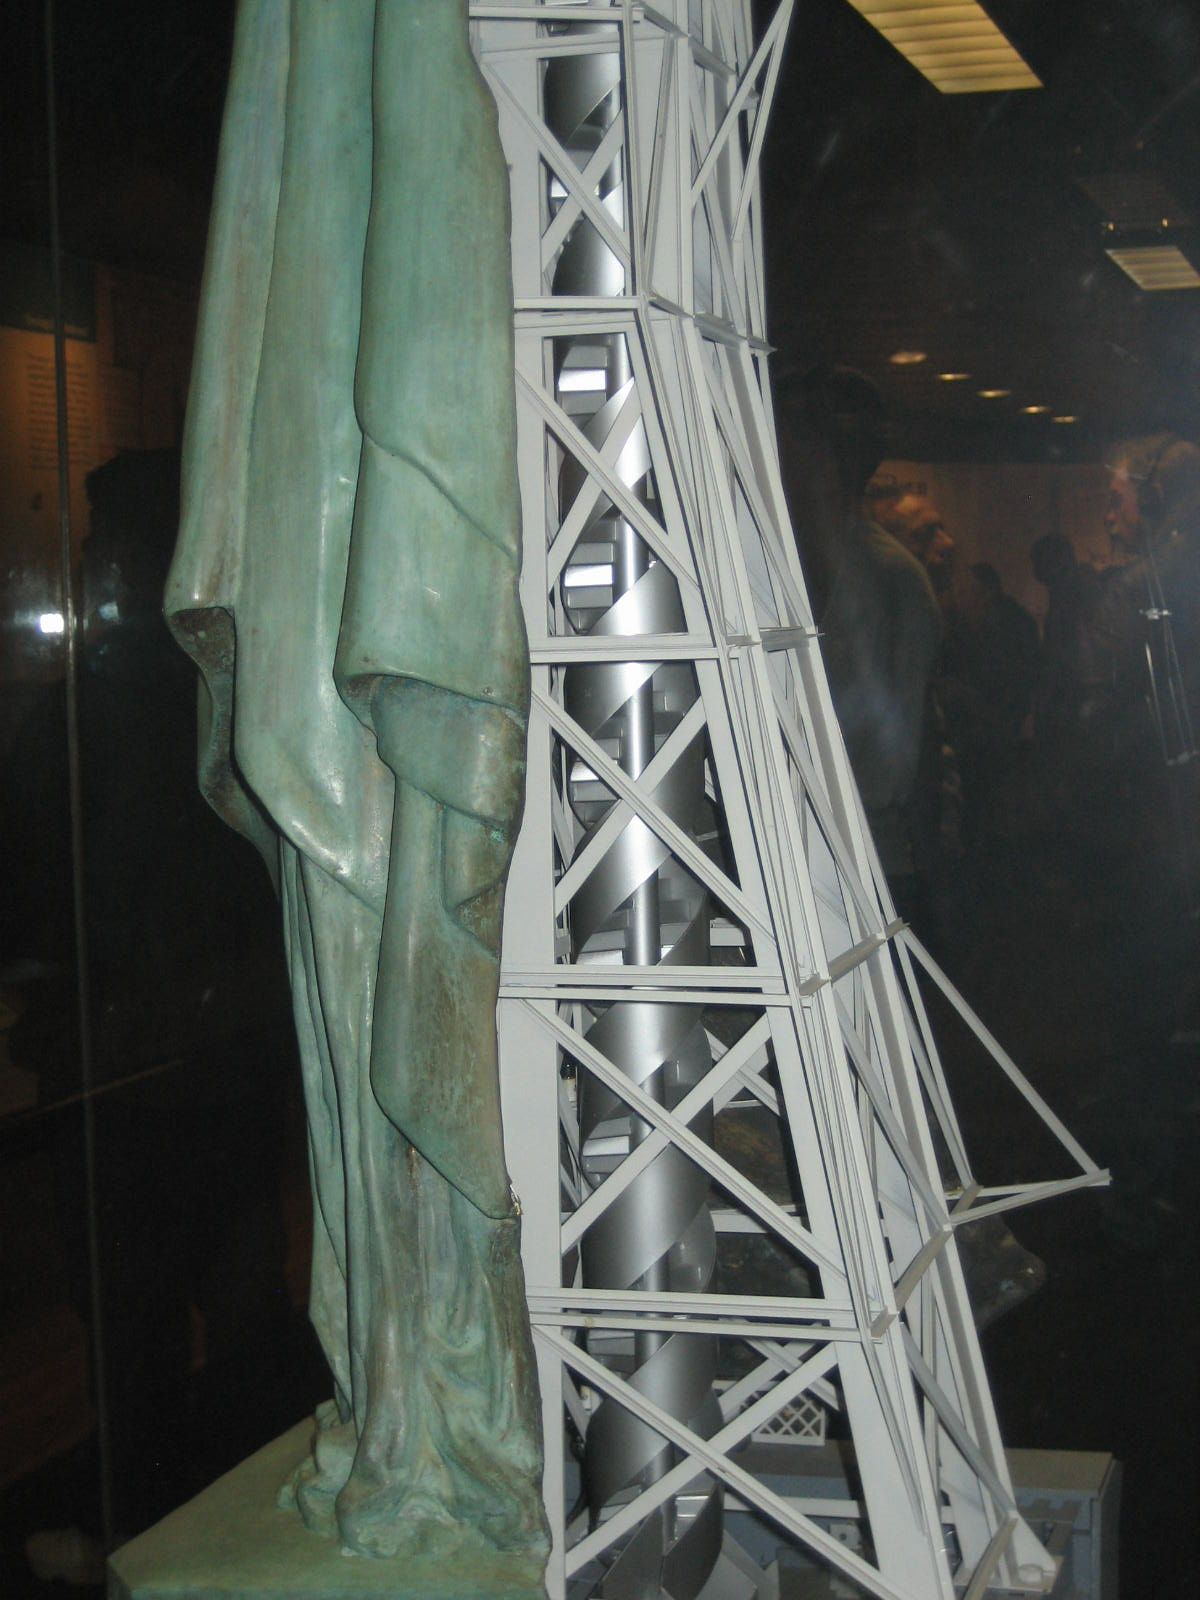 Stair Case Frame Statue Of Liberty Statue Of Liberty Statue